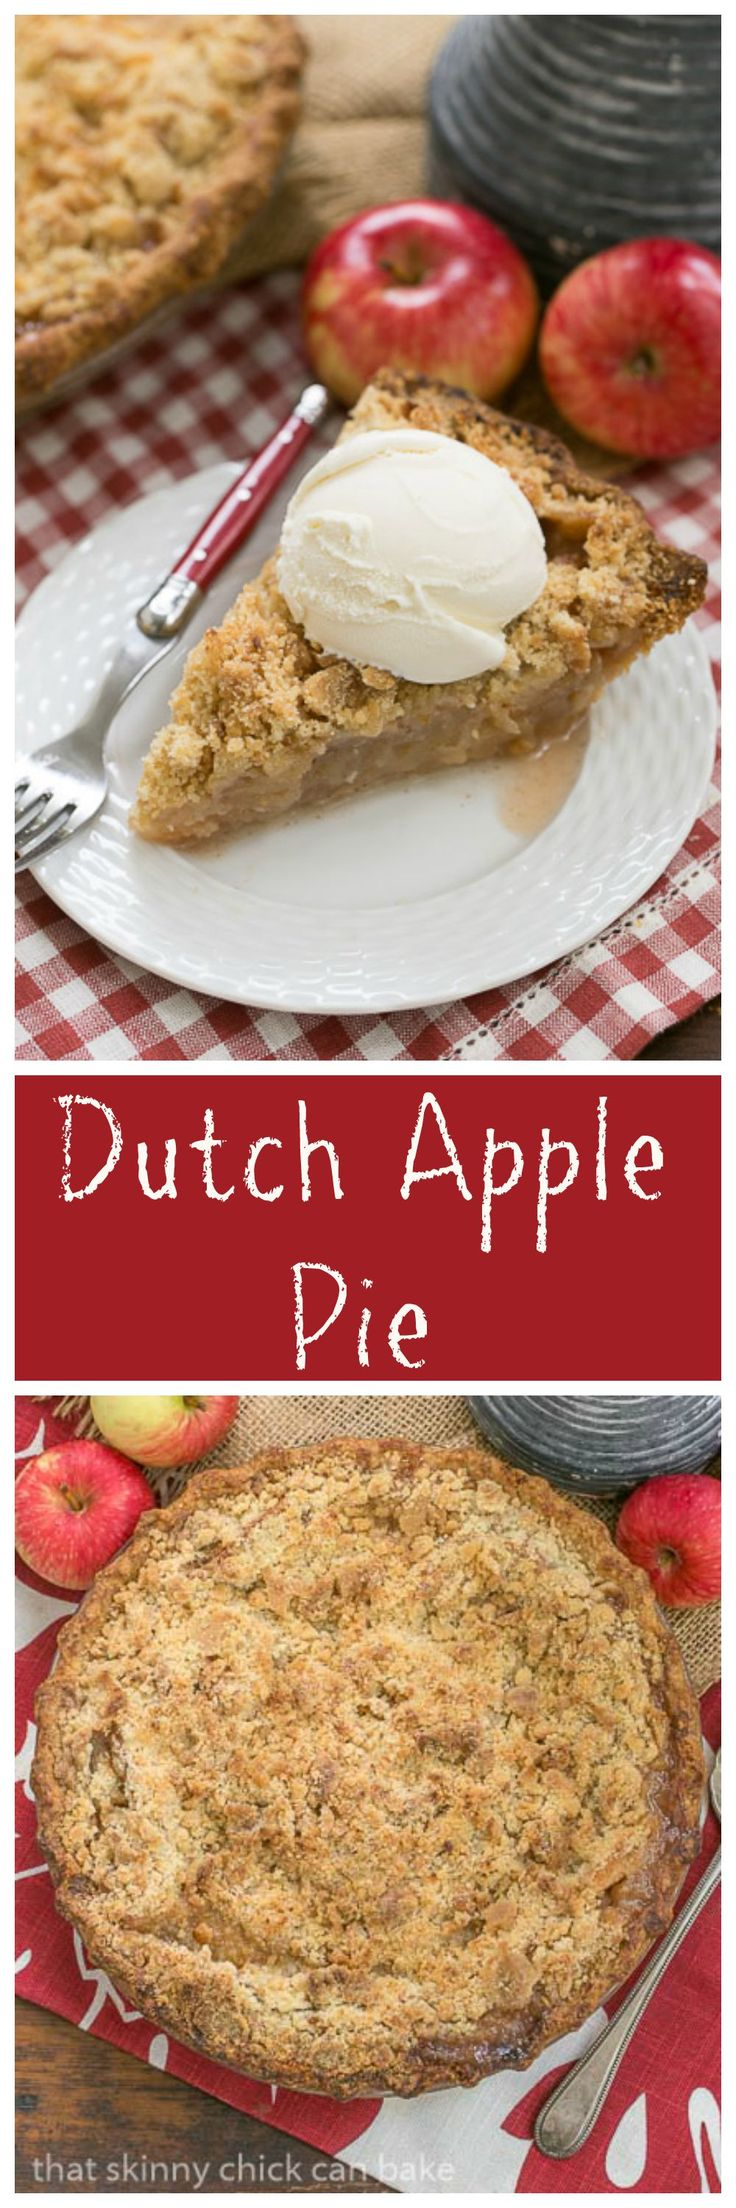 Dutch Apple Pie   Cinnamon spiced apples in a pastry shell with a streusel topping